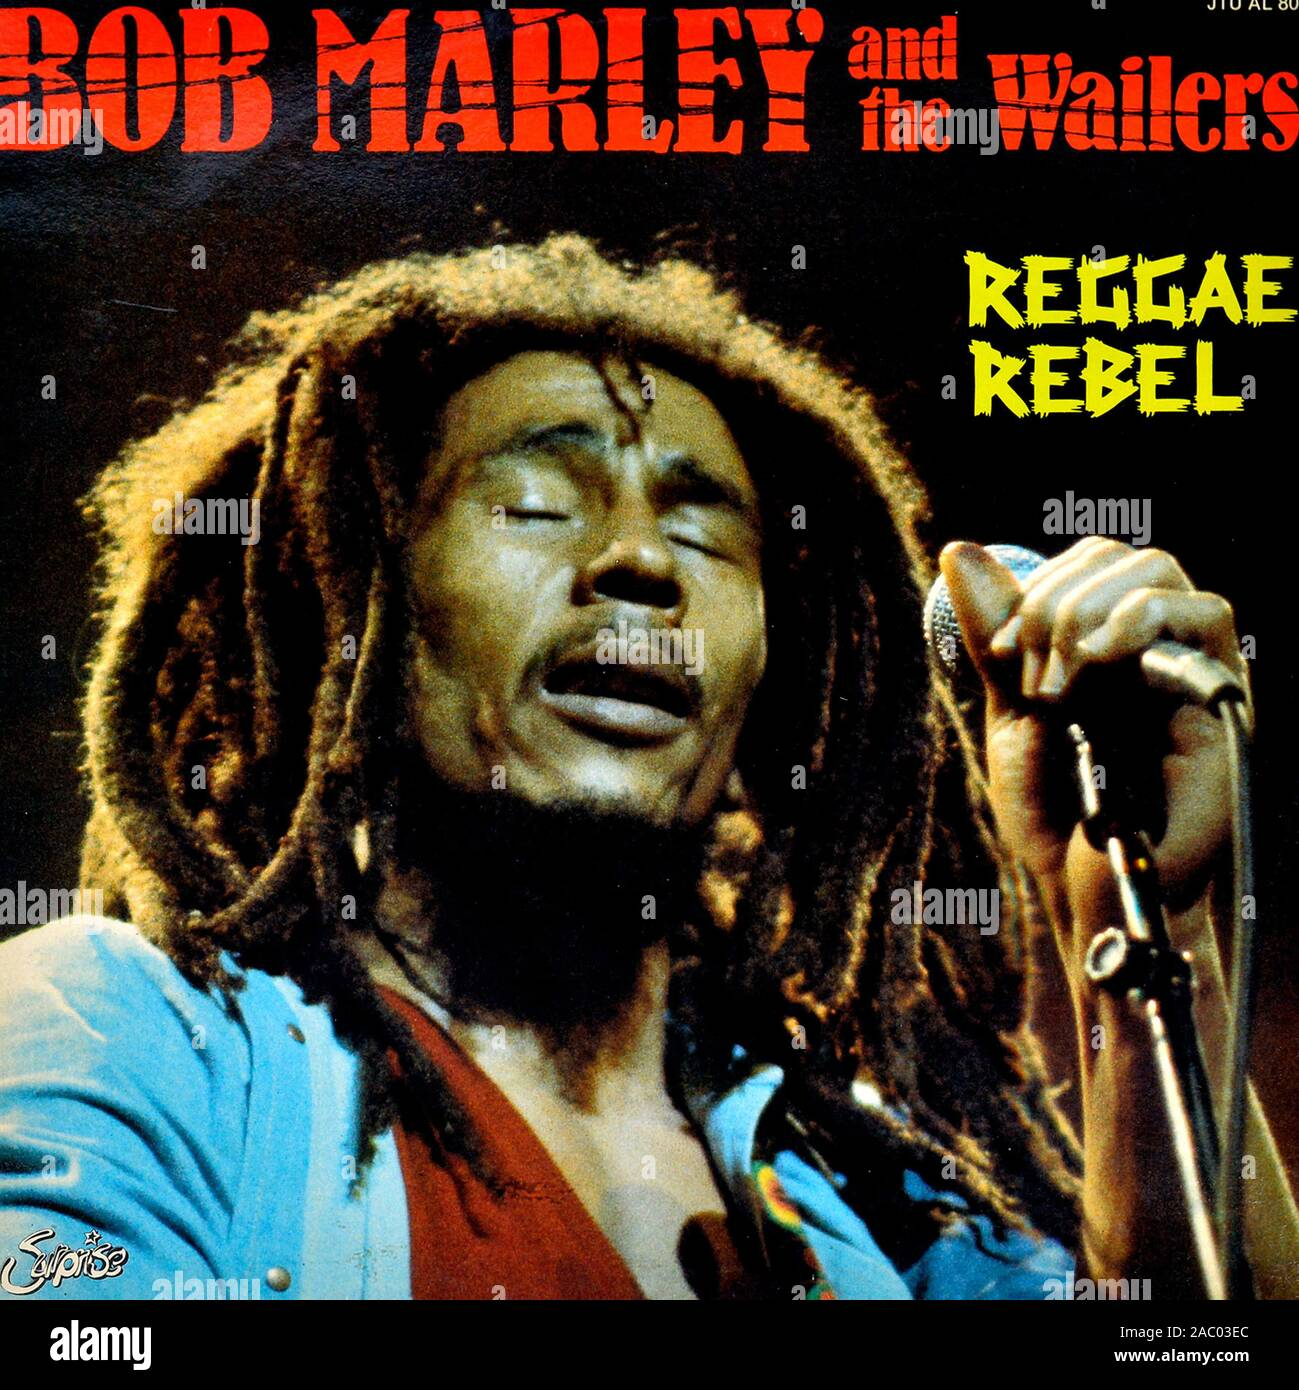 BOB MARLEY and the Wailers Reggae Rebel - Vintage vinyl album cover Stock  Photo - Alamy